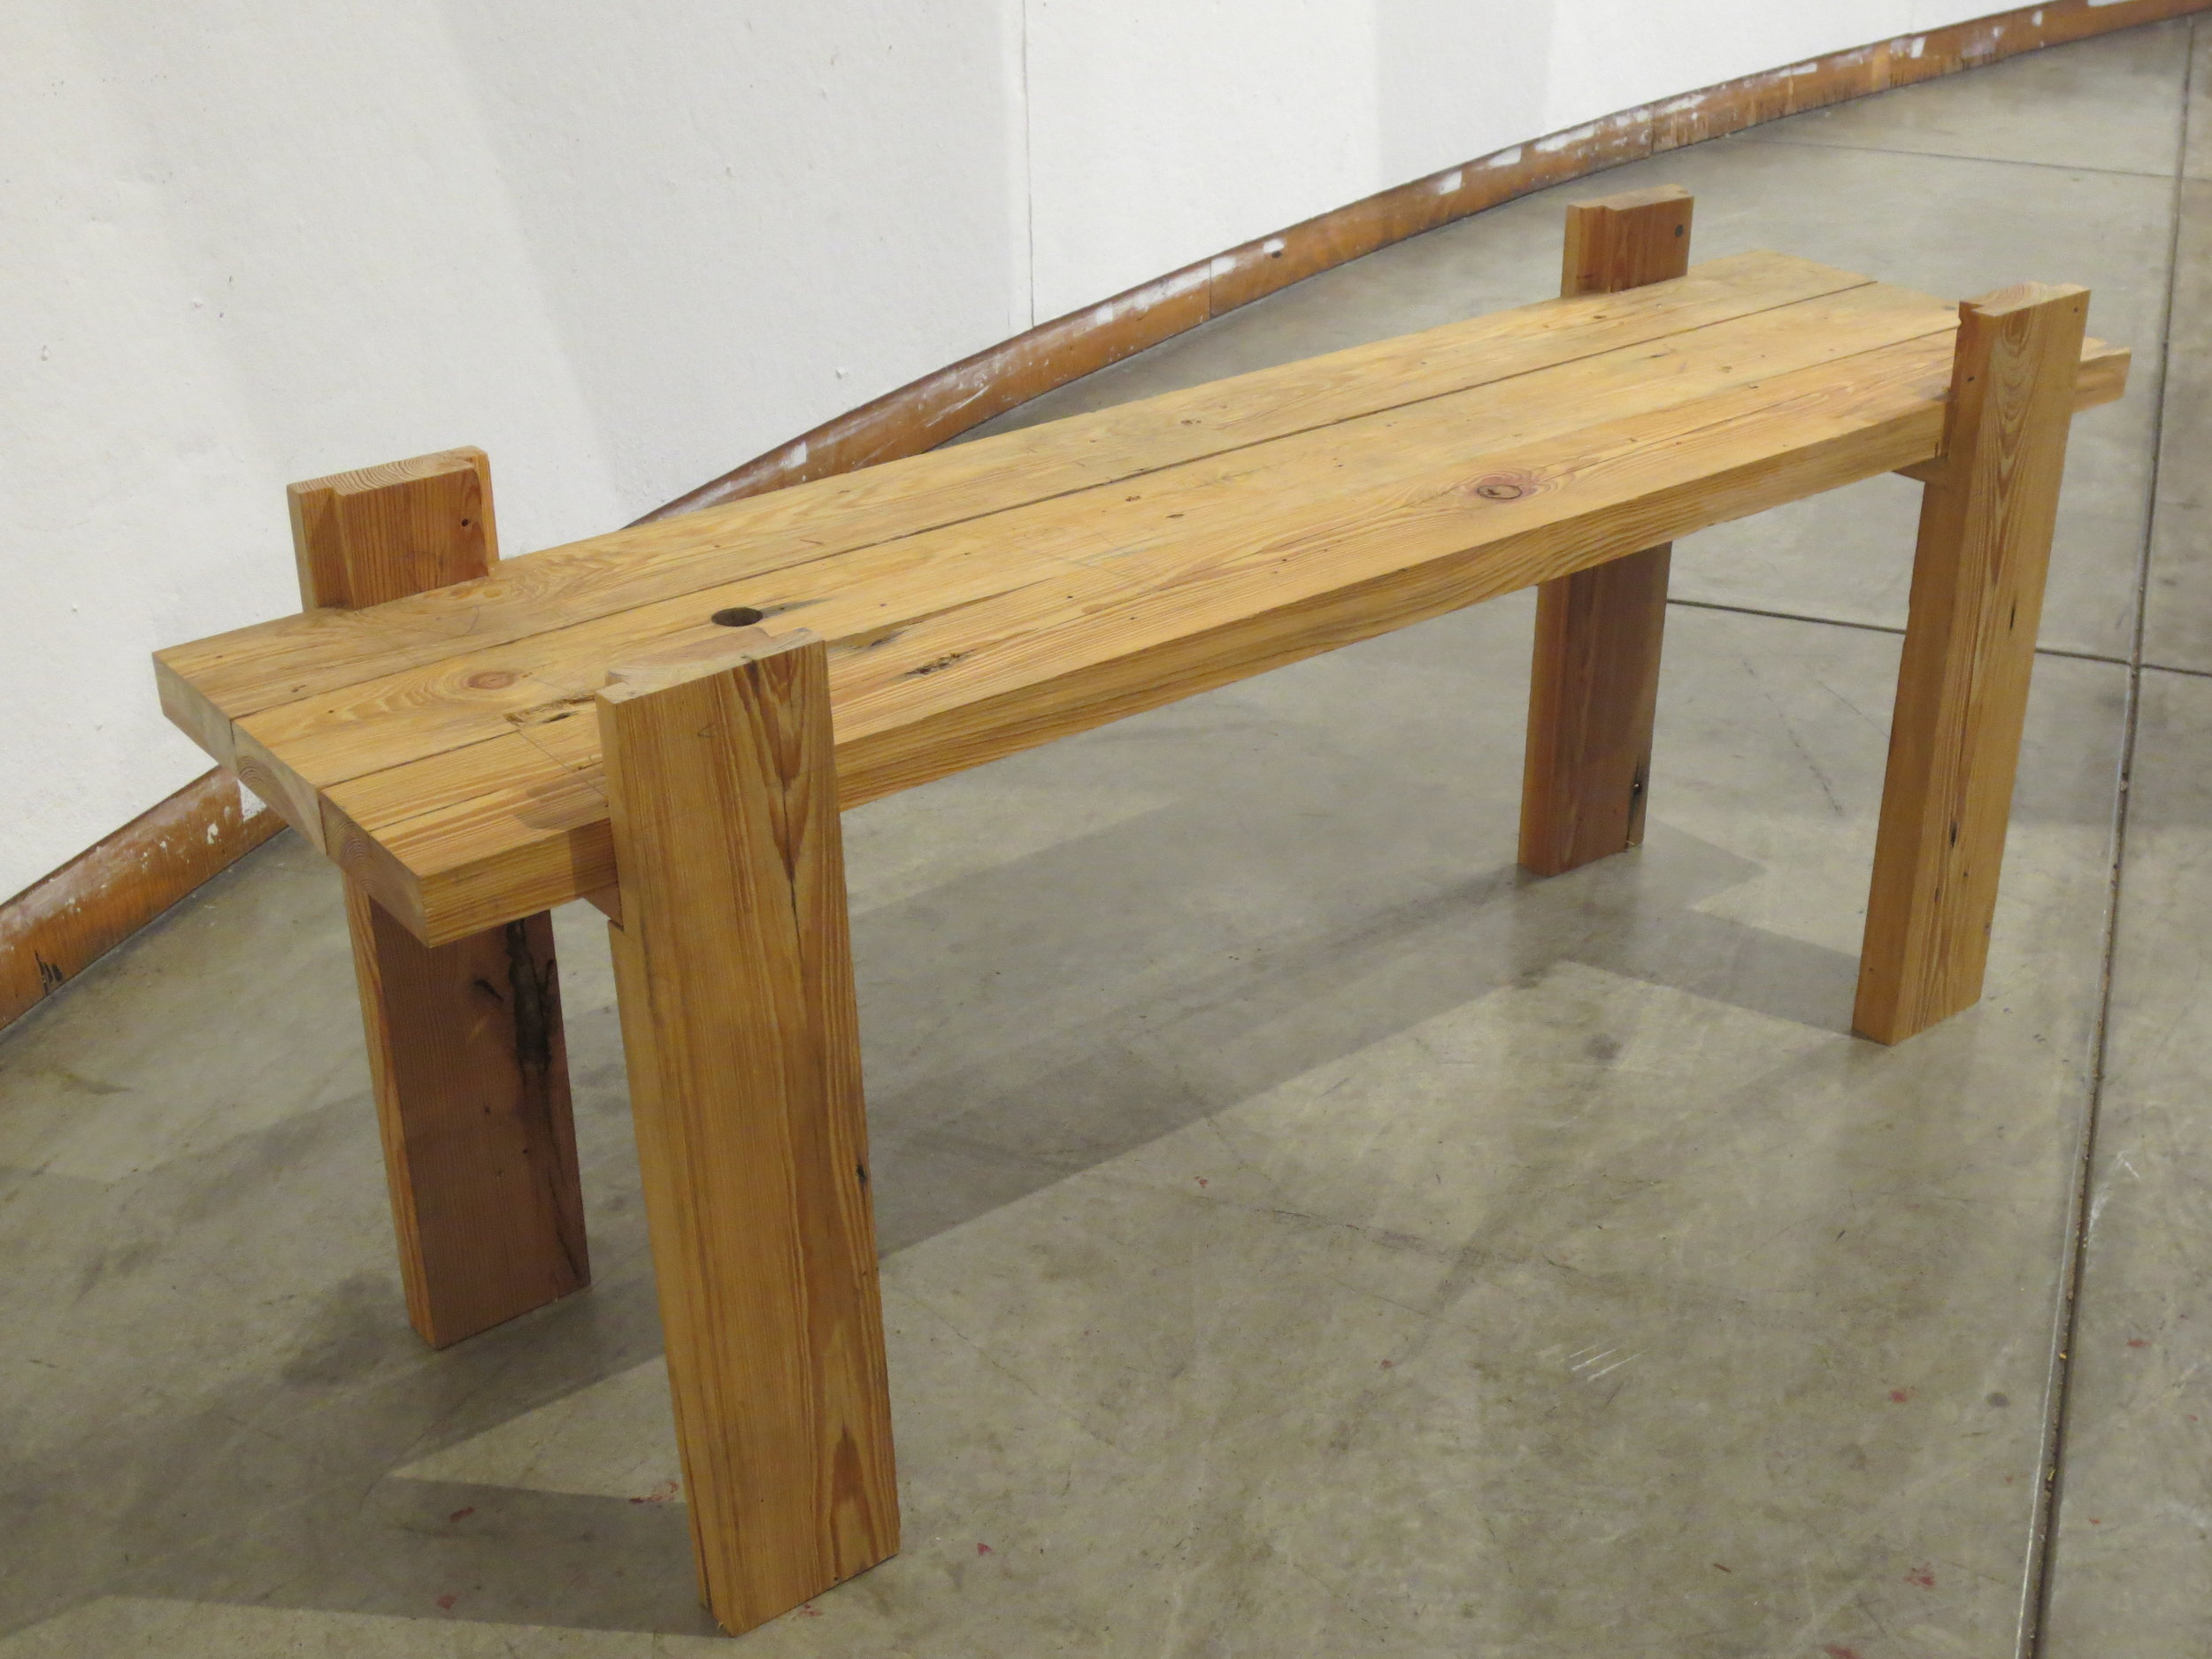 Dovetail-jointed bench, constructed by hand-saw without glue or hardware.